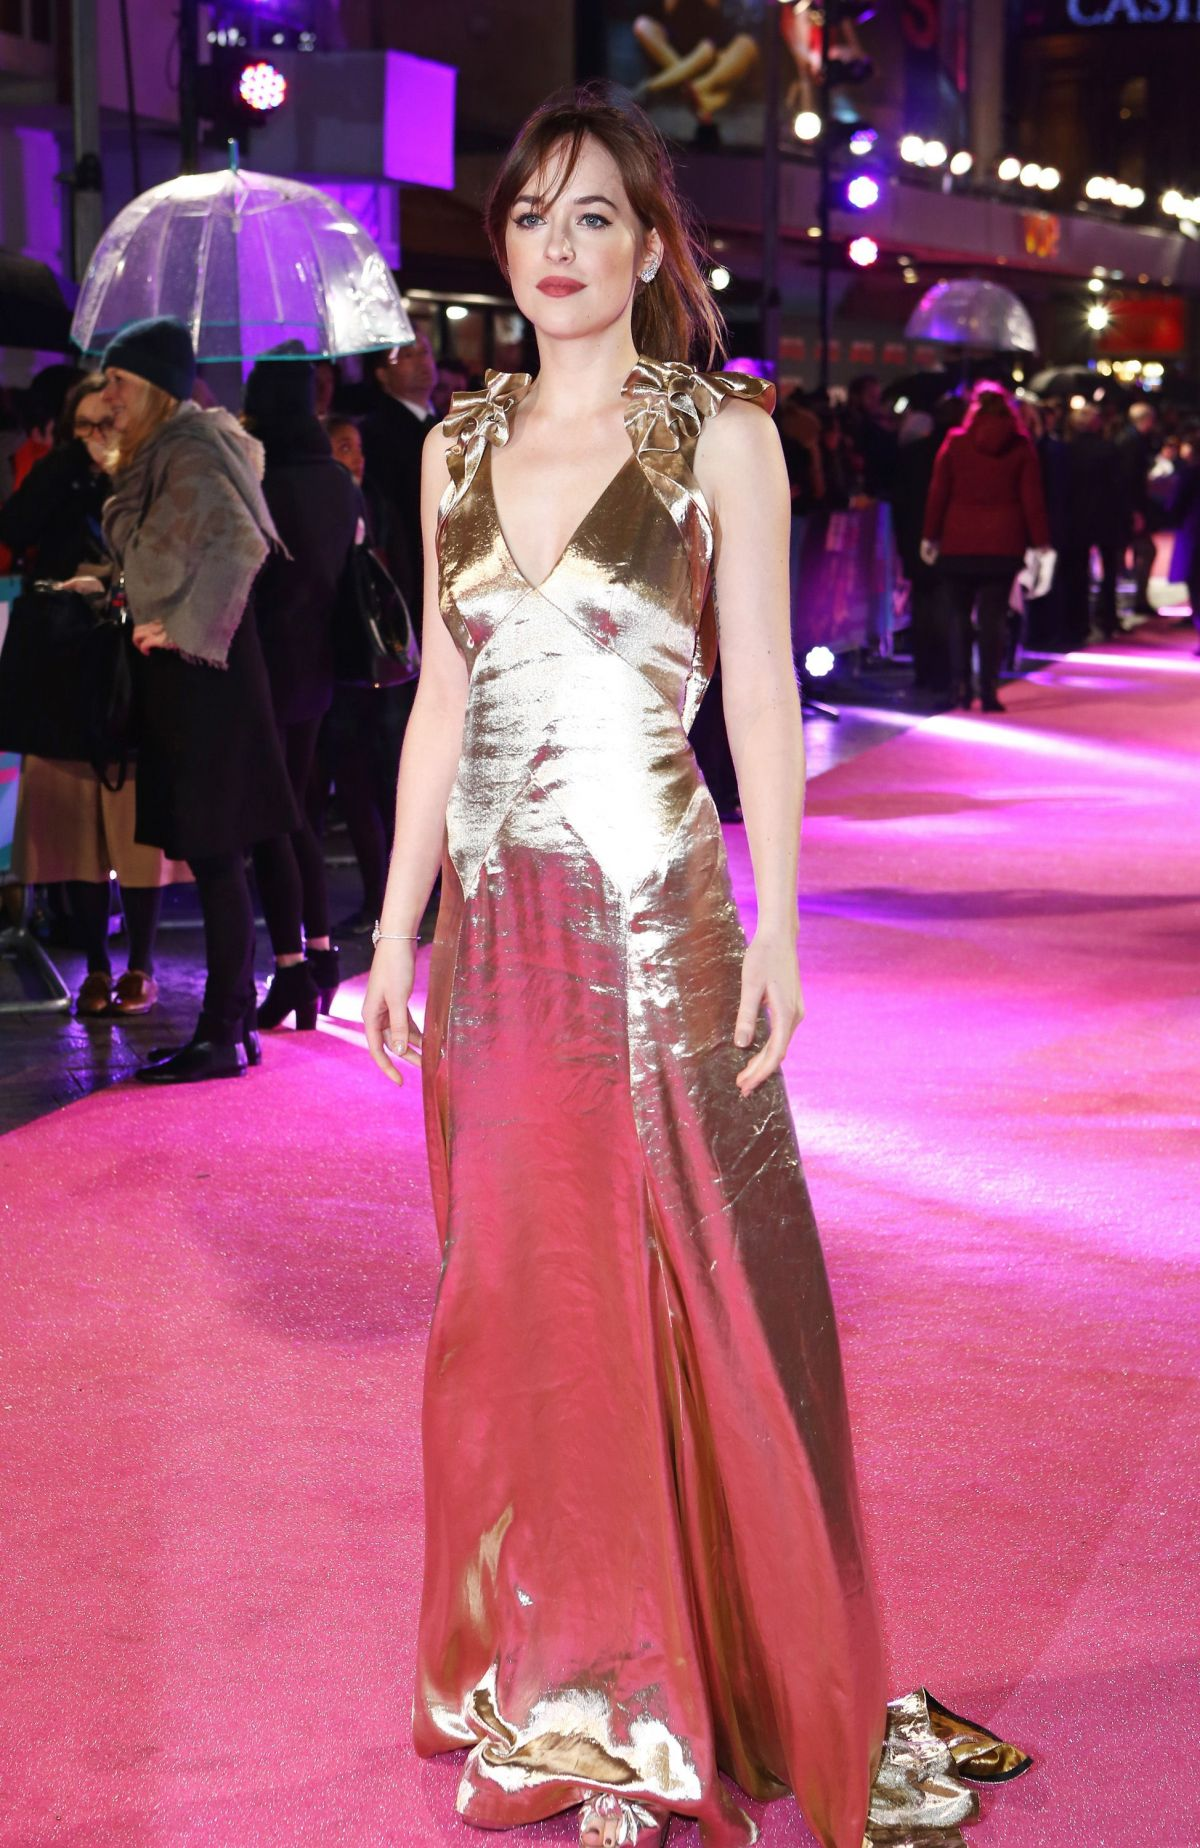 Dakota johnson at how to be single premiere in london 02092016 dakota johnson at how to be single premiere in london 02092016 ccuart Choice Image